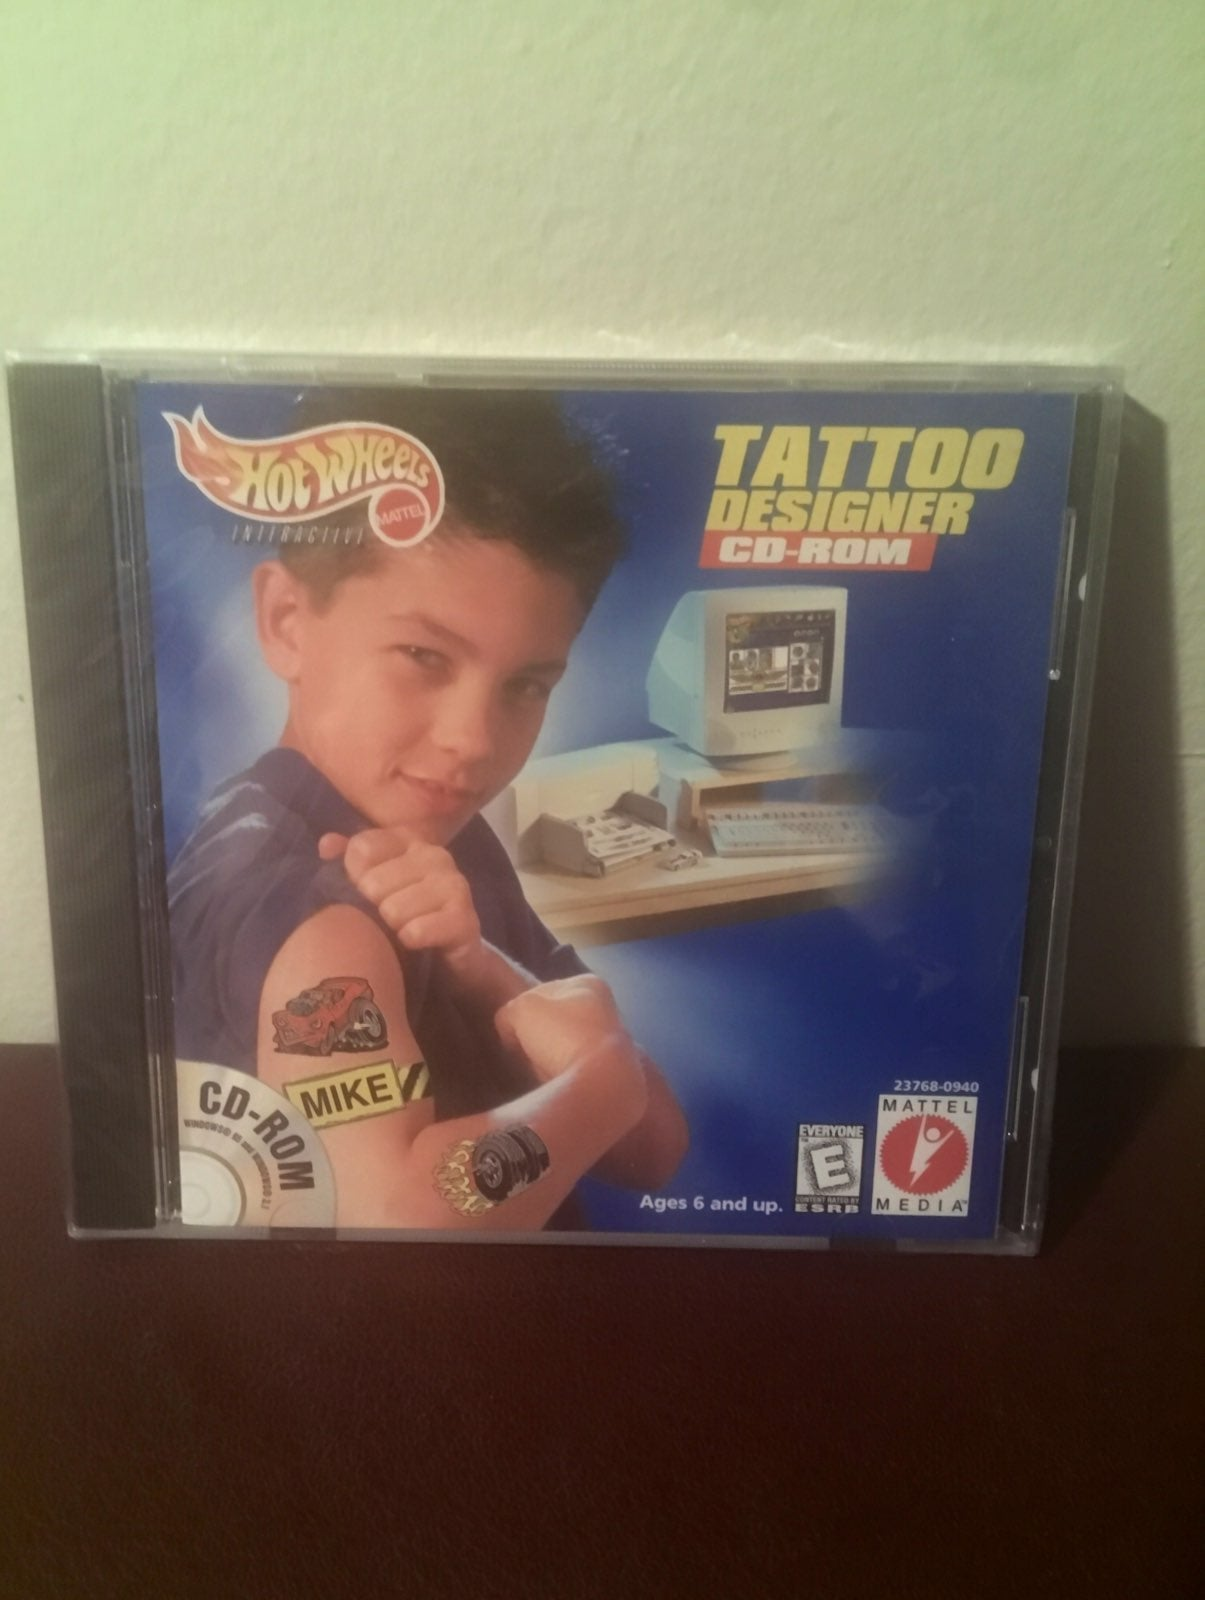 Hot Wheels TATTOO Designer CD-Rom 1999,